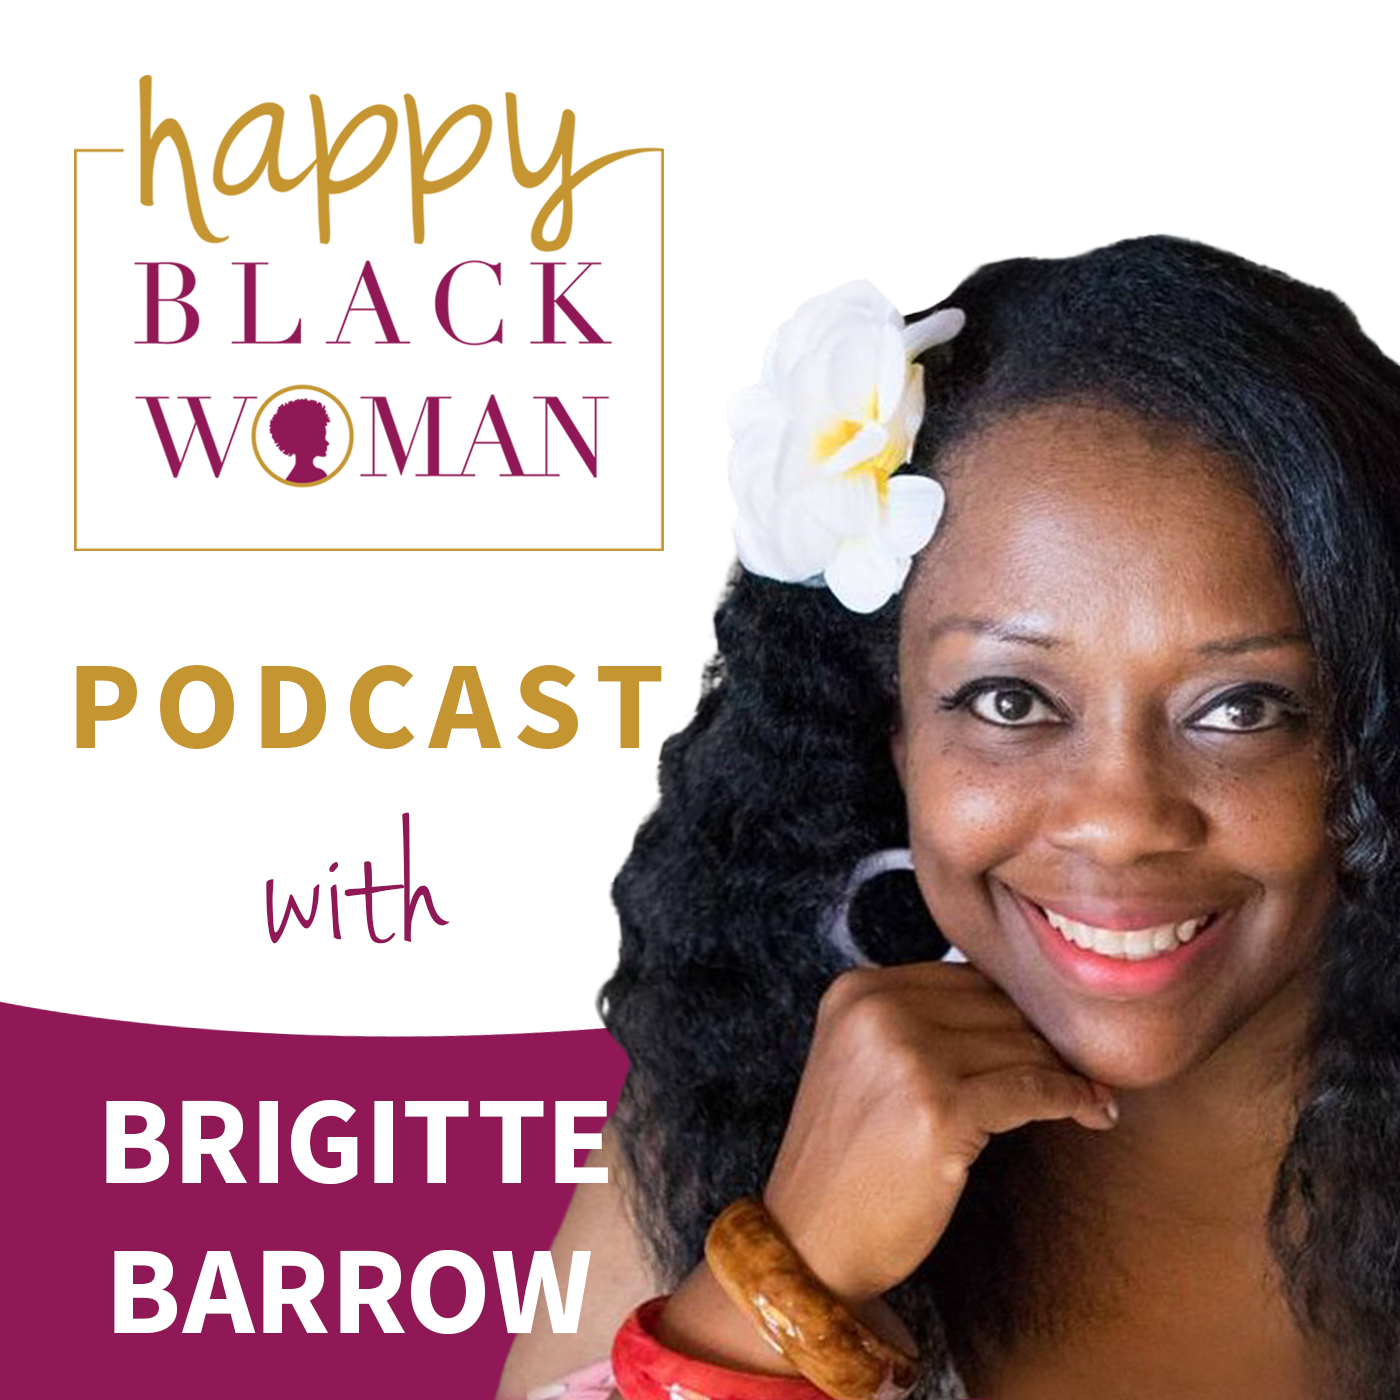 HBW098: Brigitte Barrow, Helping Youth Prepare for Real Life